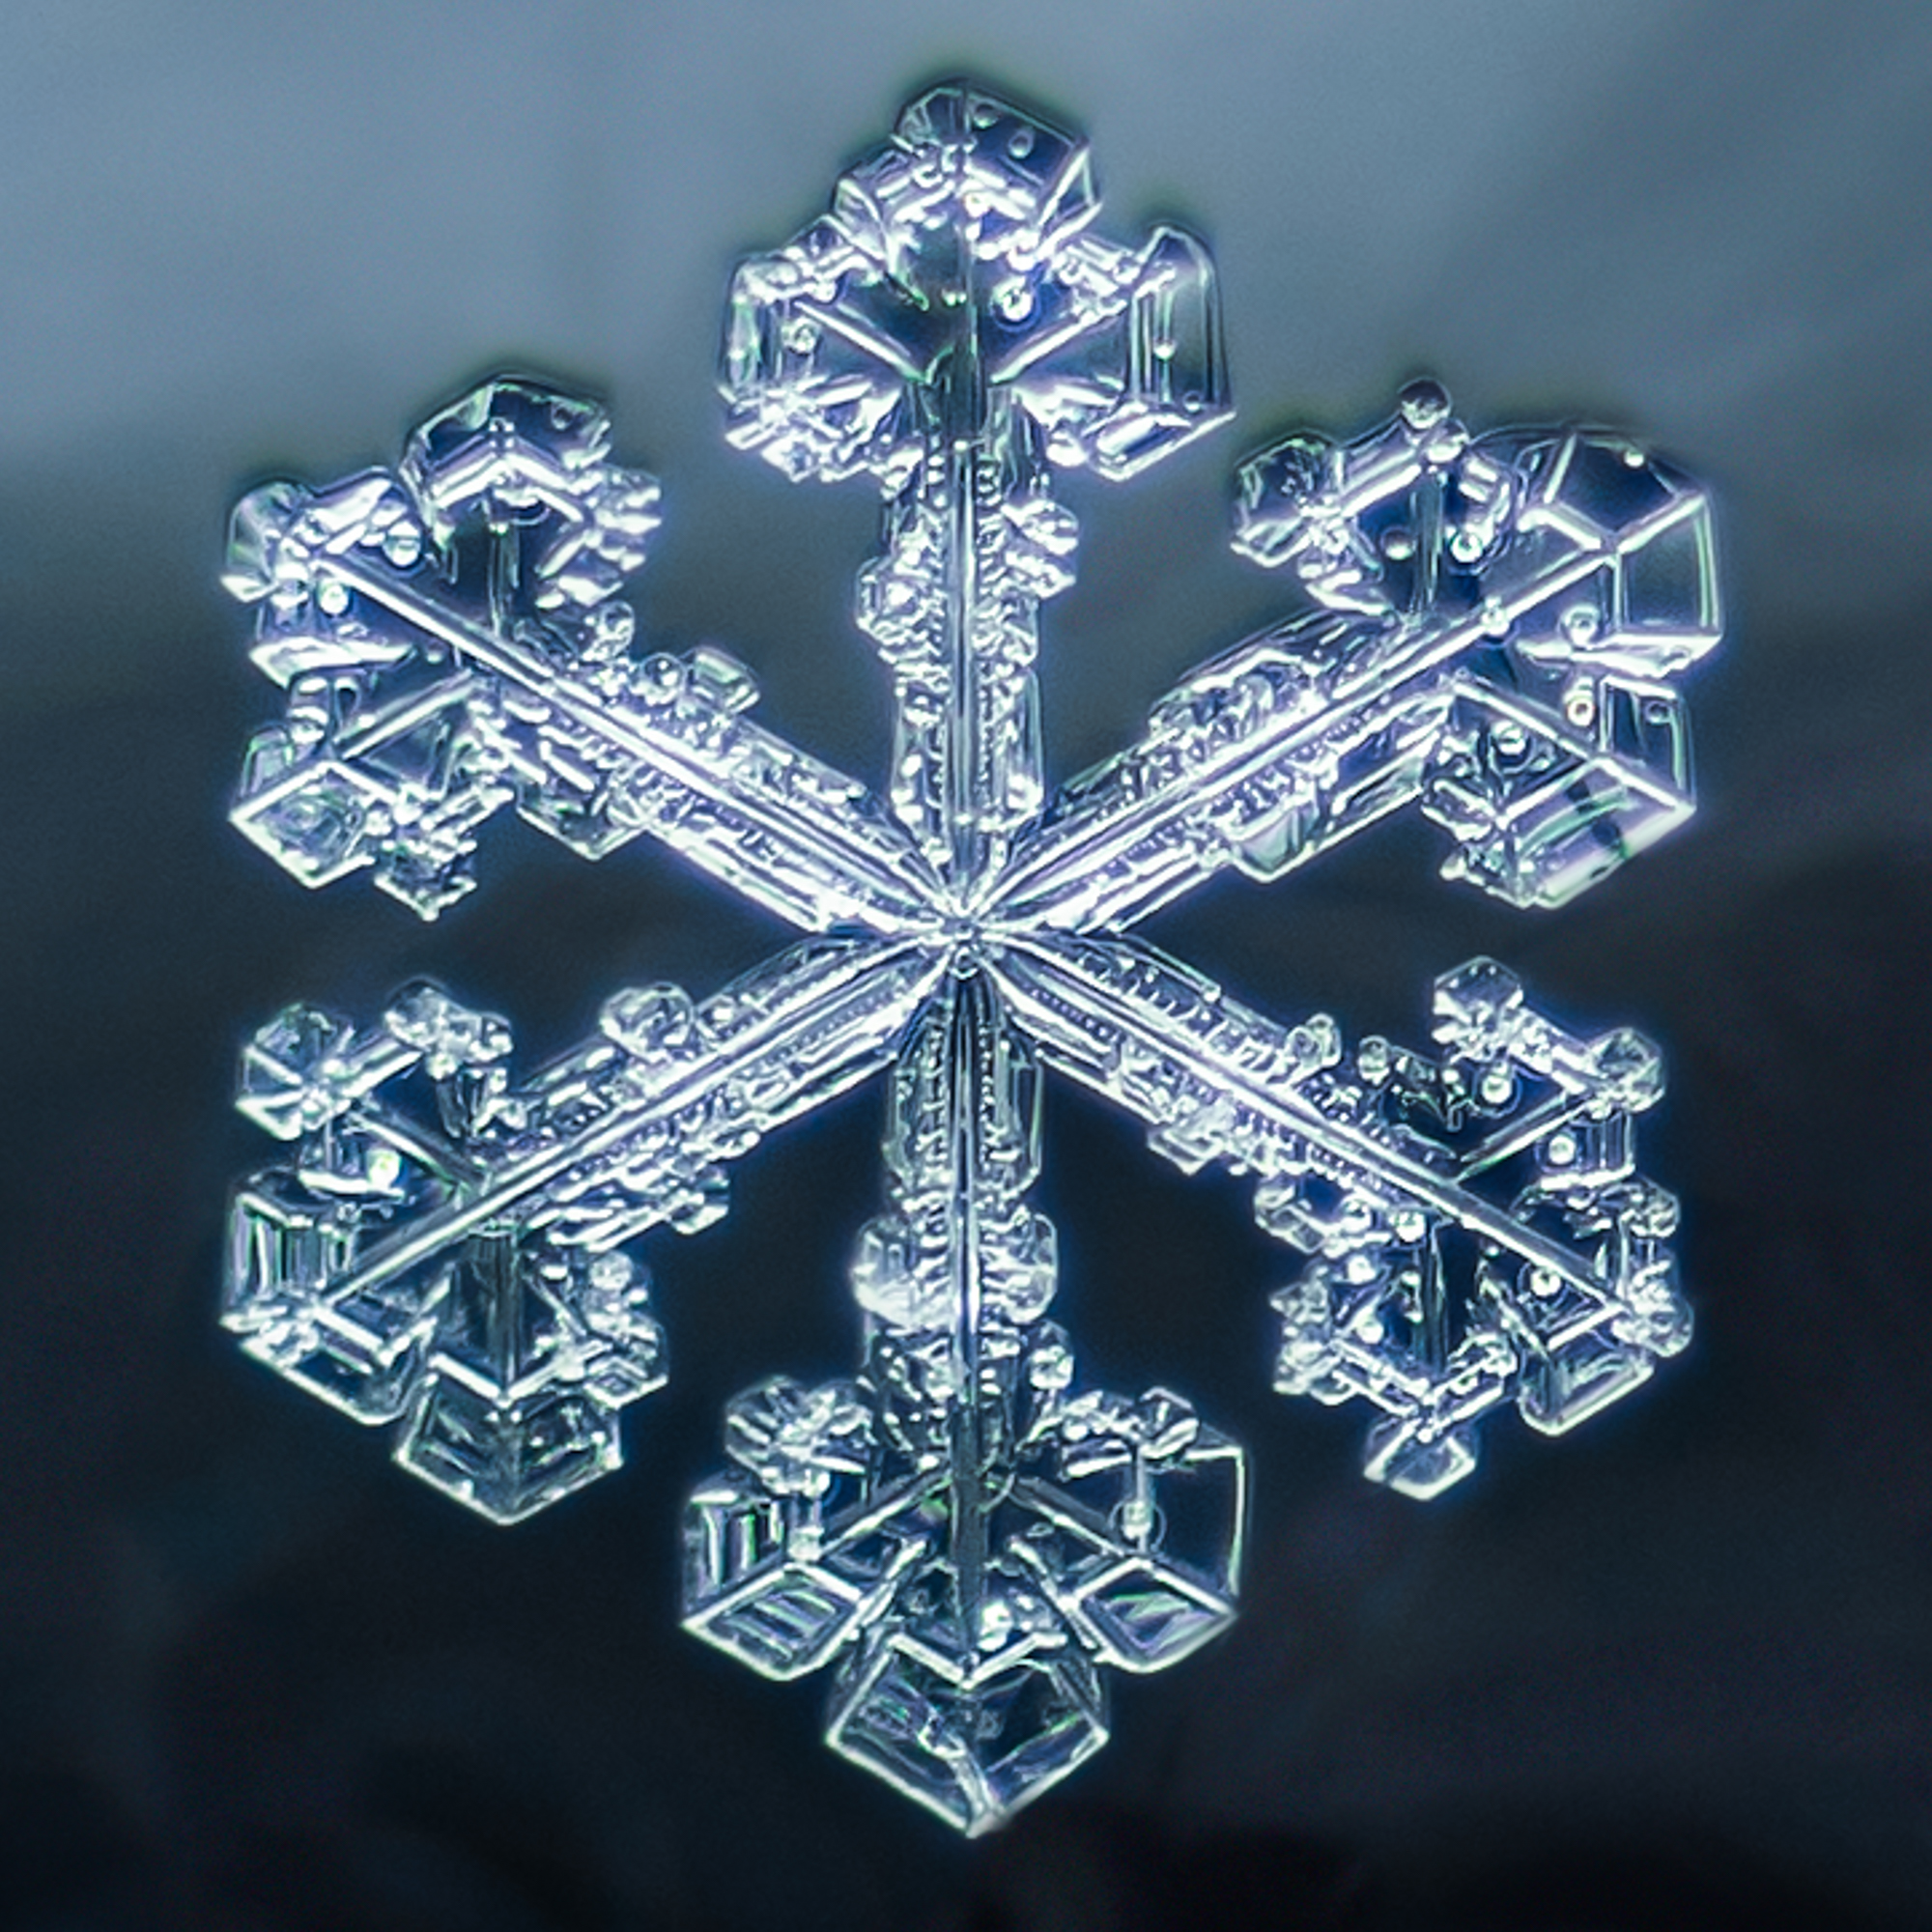 snowflake photography sample 1-2.jpg